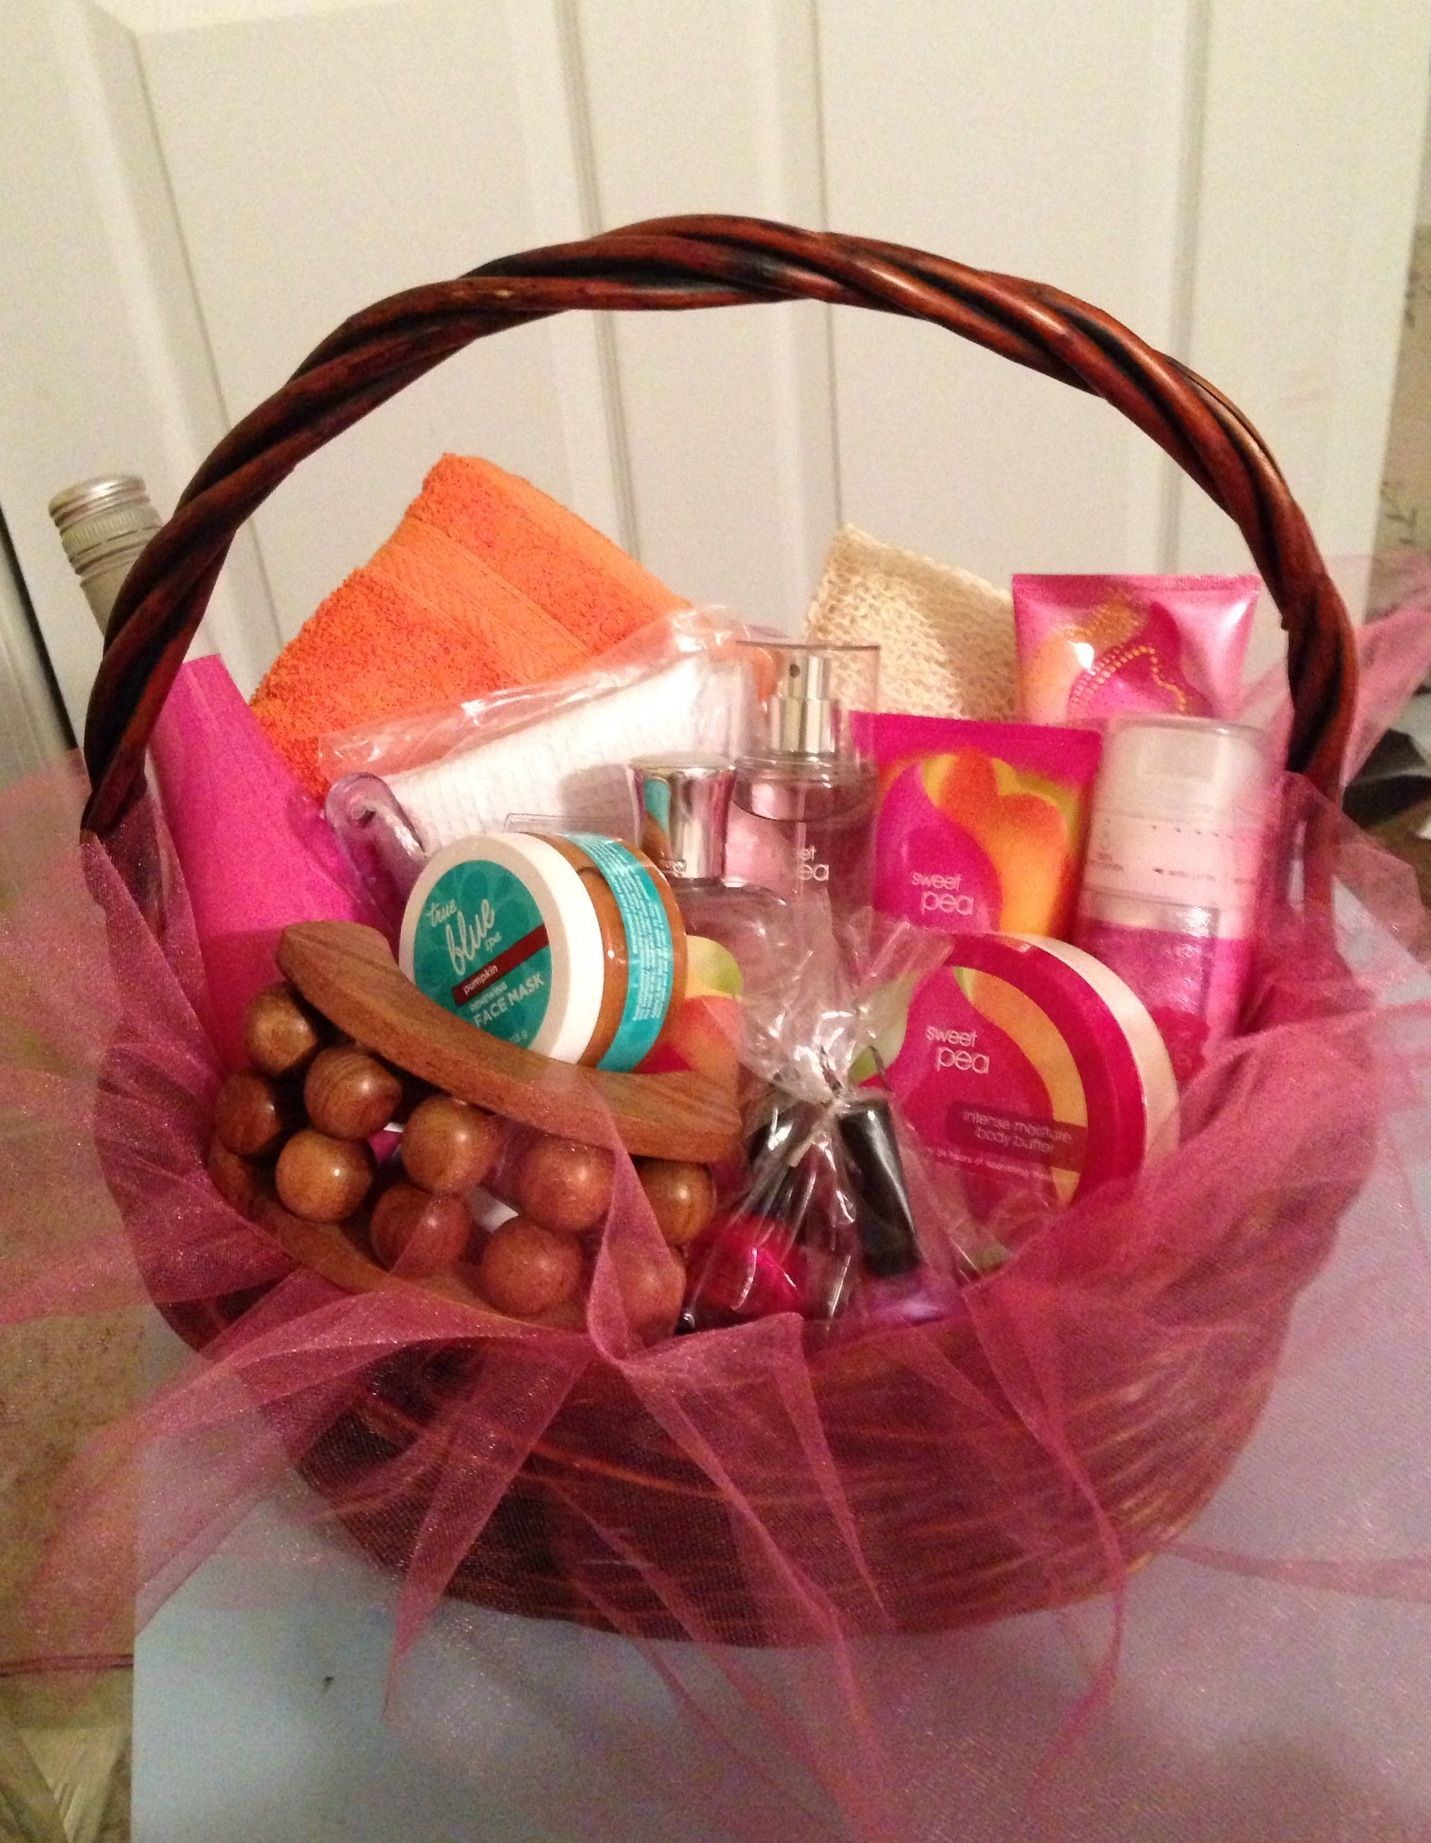 cute basket idea for spa giftcard and other items